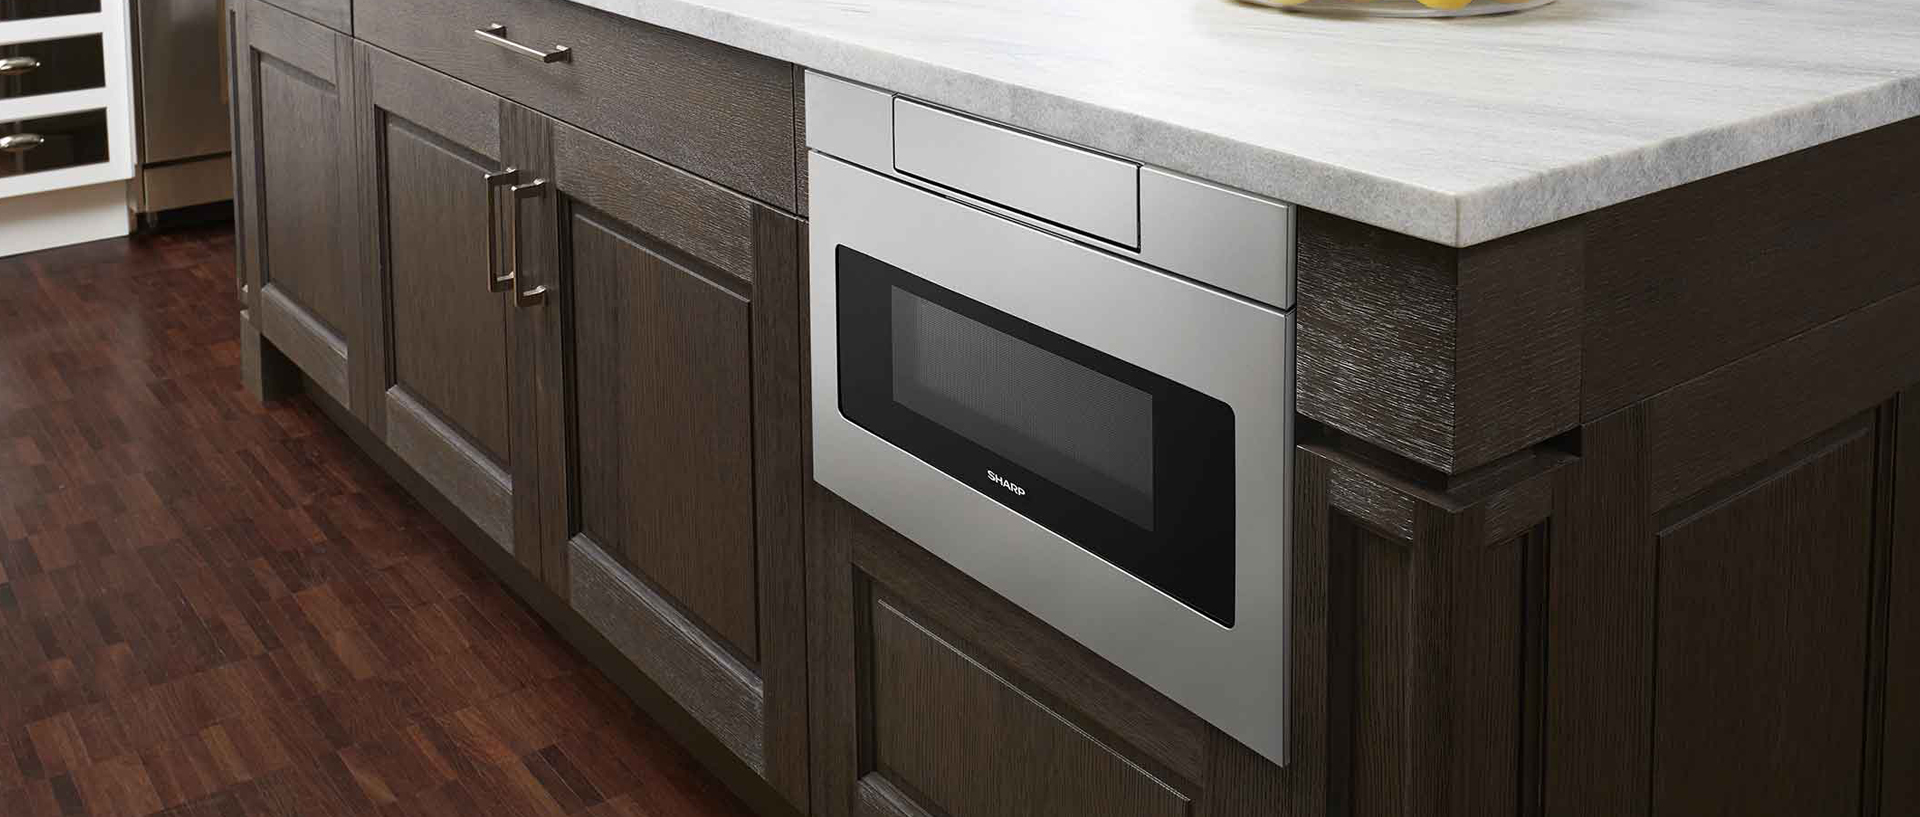 slide-in and built-in appliances - consumer reports